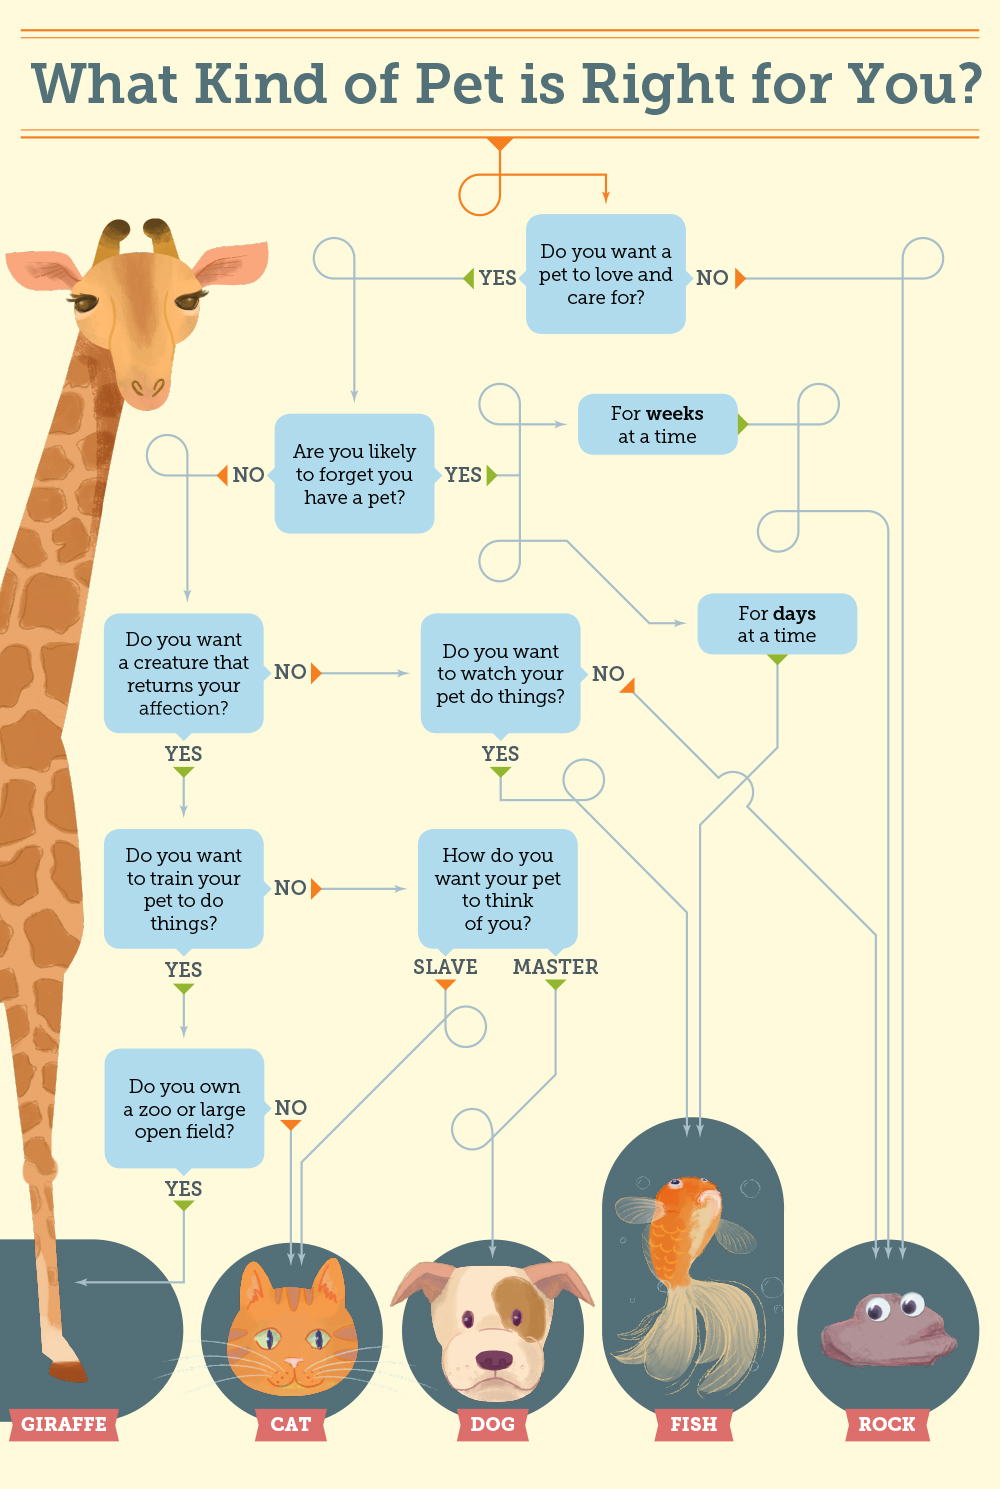 What Kind of Pet is Right for You? Alt design